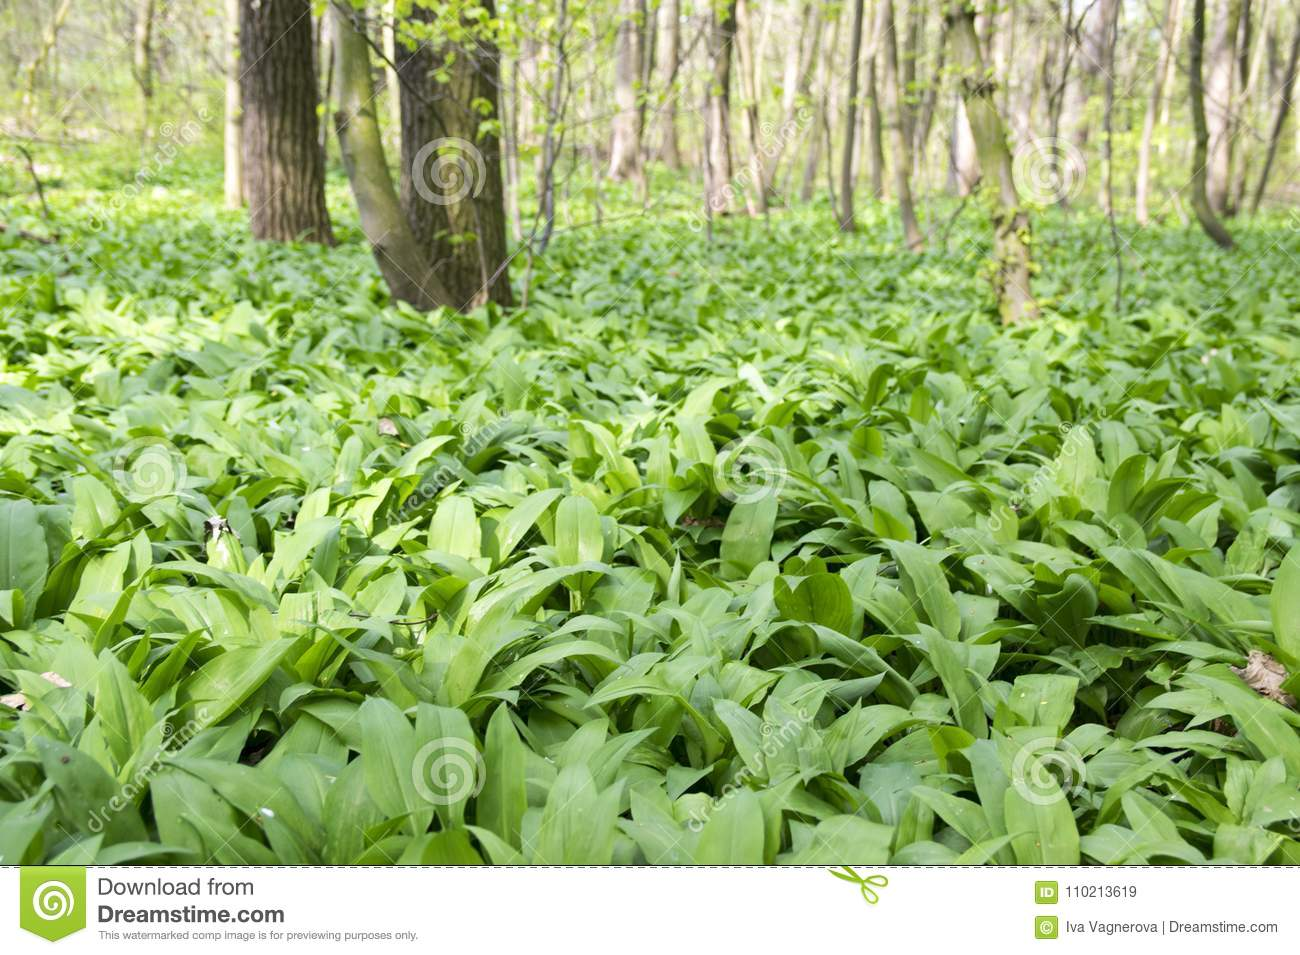 Magic nature place full of wild bear garlic, green leaves background